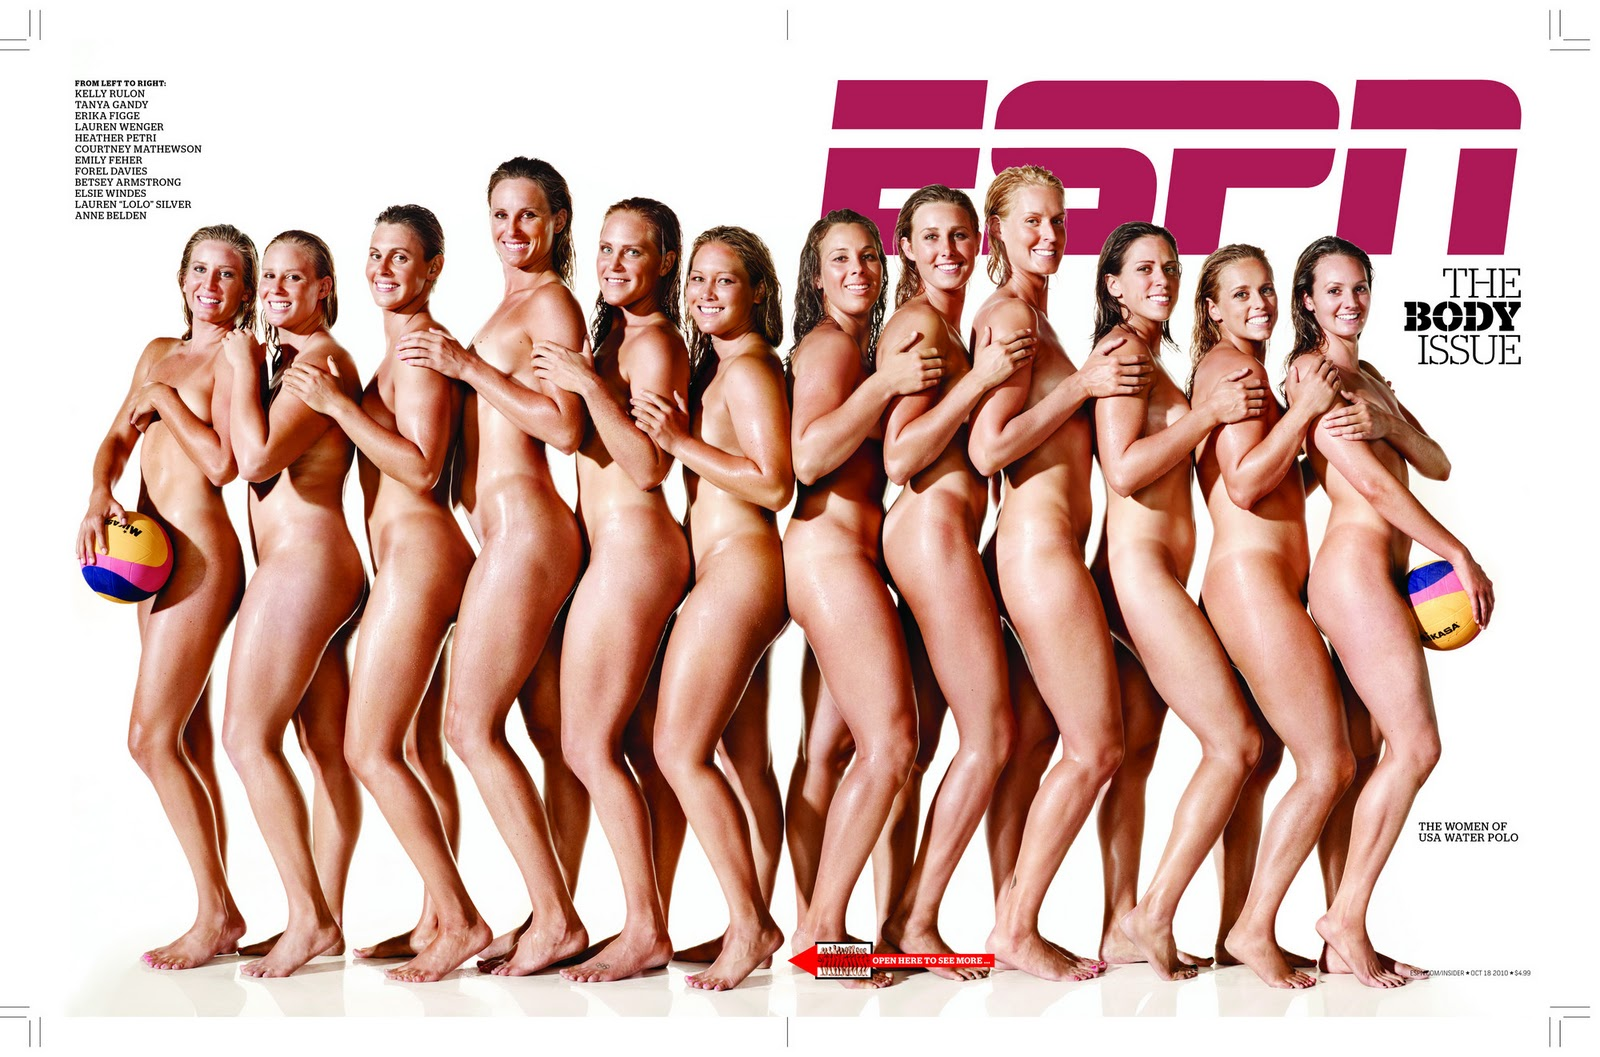 Body espn issue nude female athletes 15